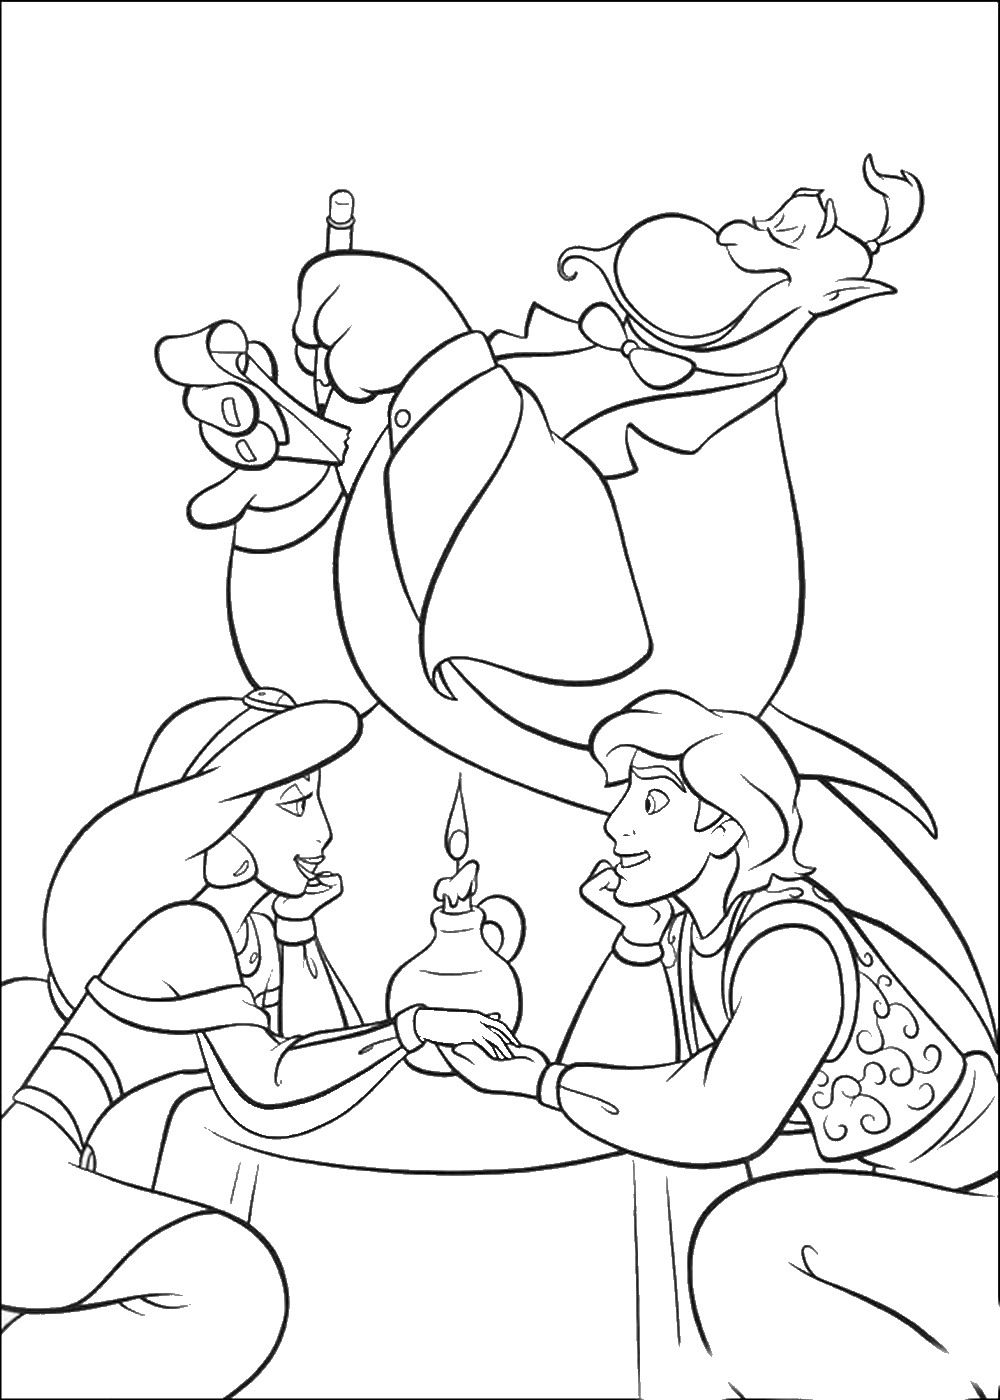 aladdin coloring page aladdin activities for kids wonder kids coloring aladdin page